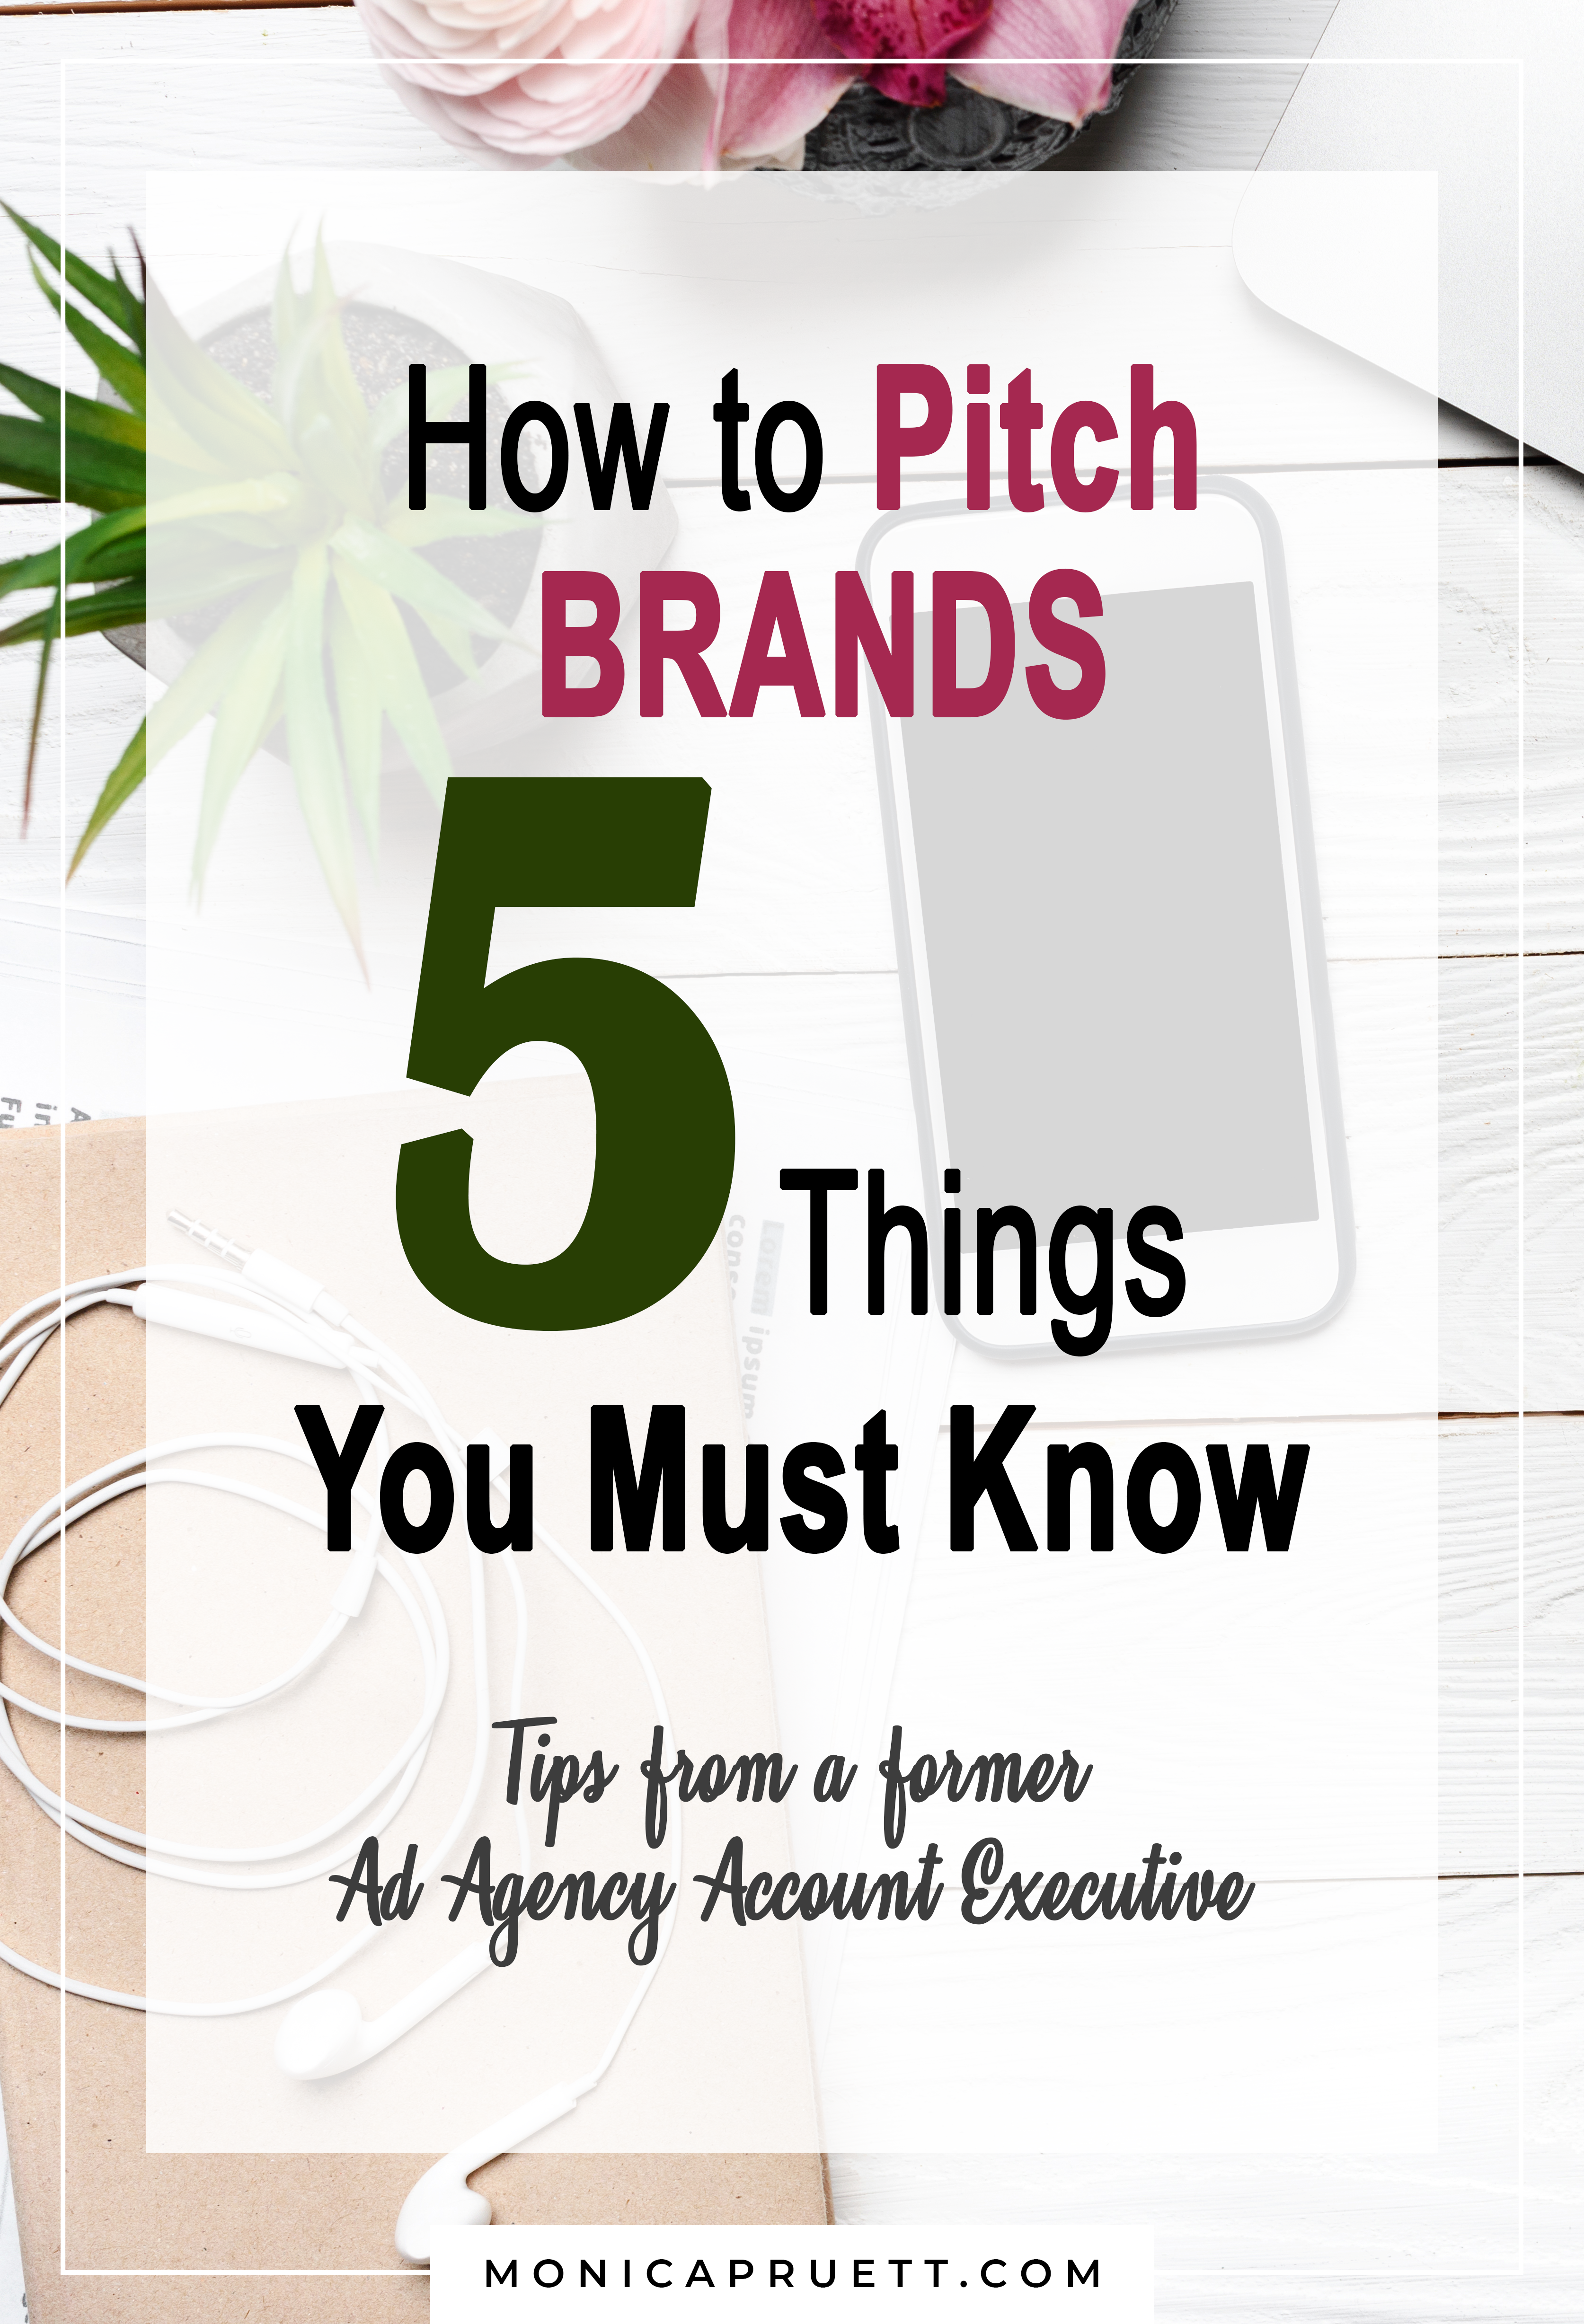 How to Pitch Brands 5 Things You Must Know - Tips from a